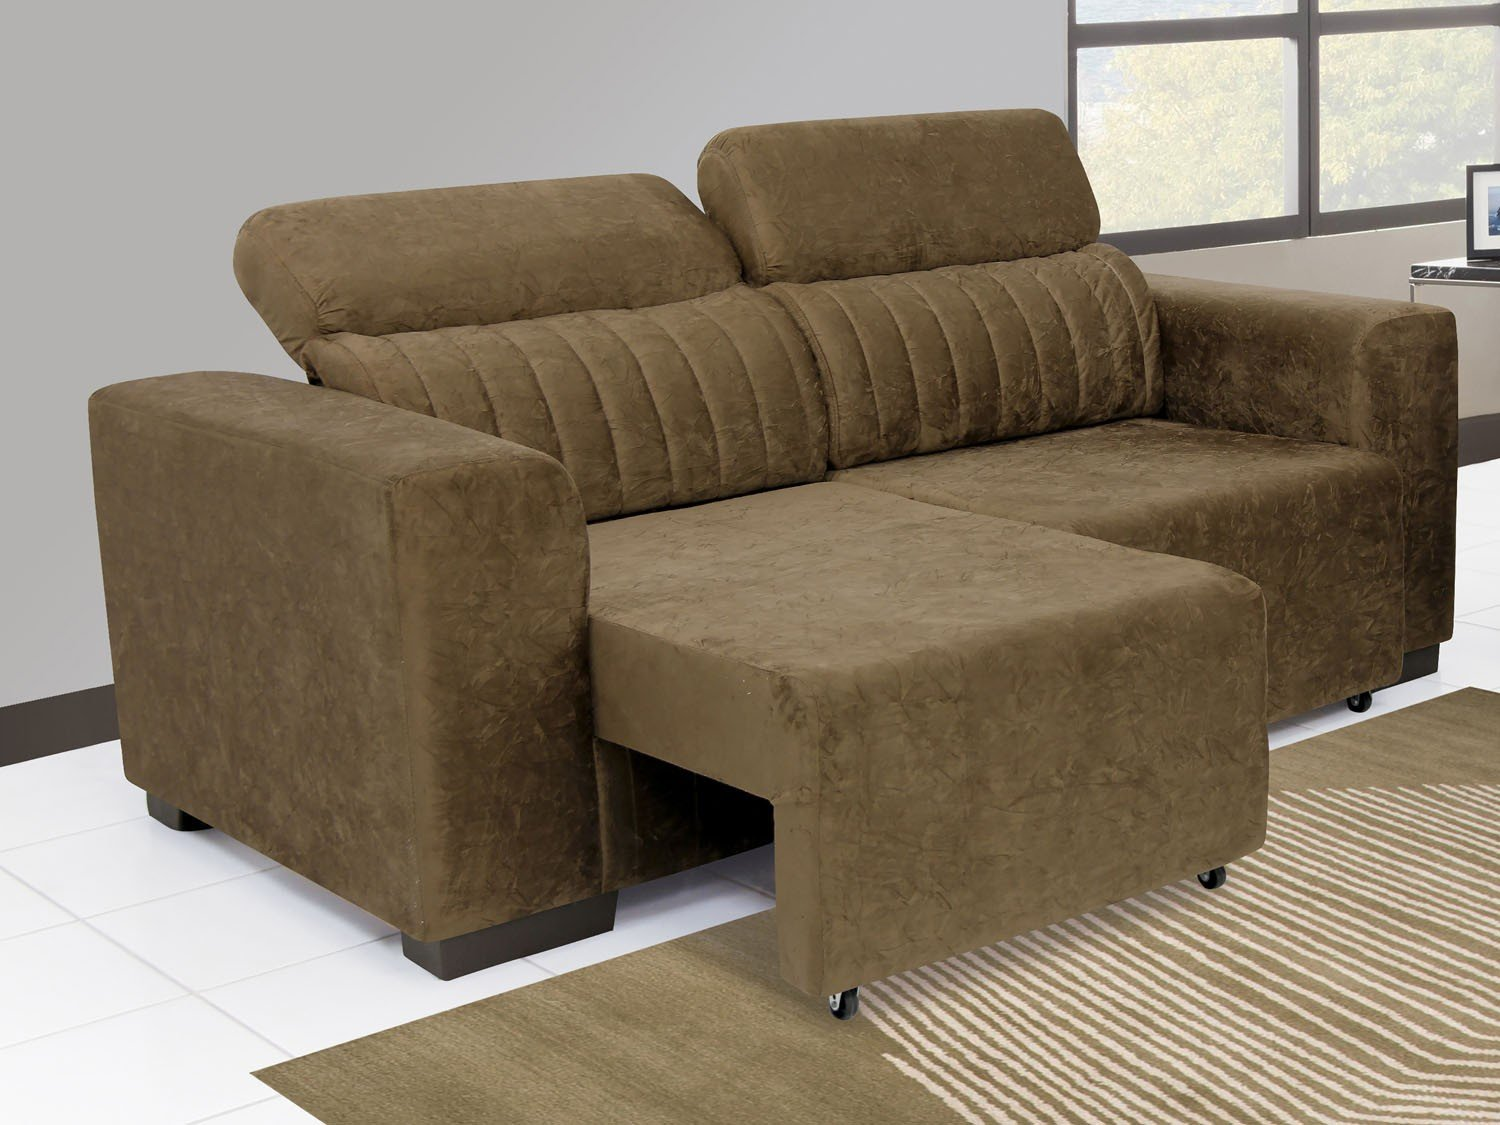 Sof retr til e reclin vel 3 lugares elite linoforte for Sofa 03 lugares retratil e reclinavel